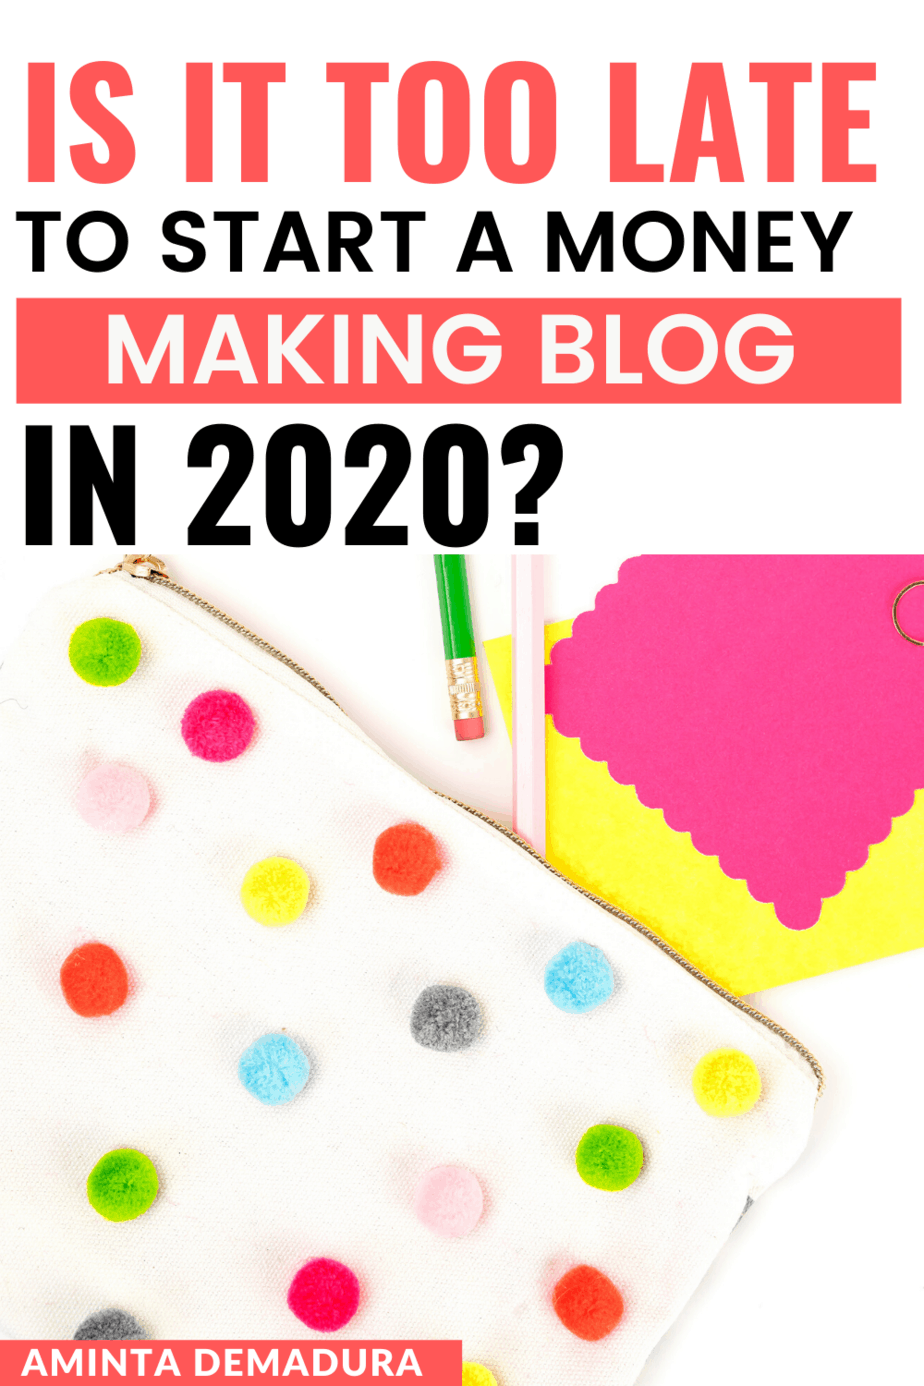 Is it too late to start a money making blog in 2020